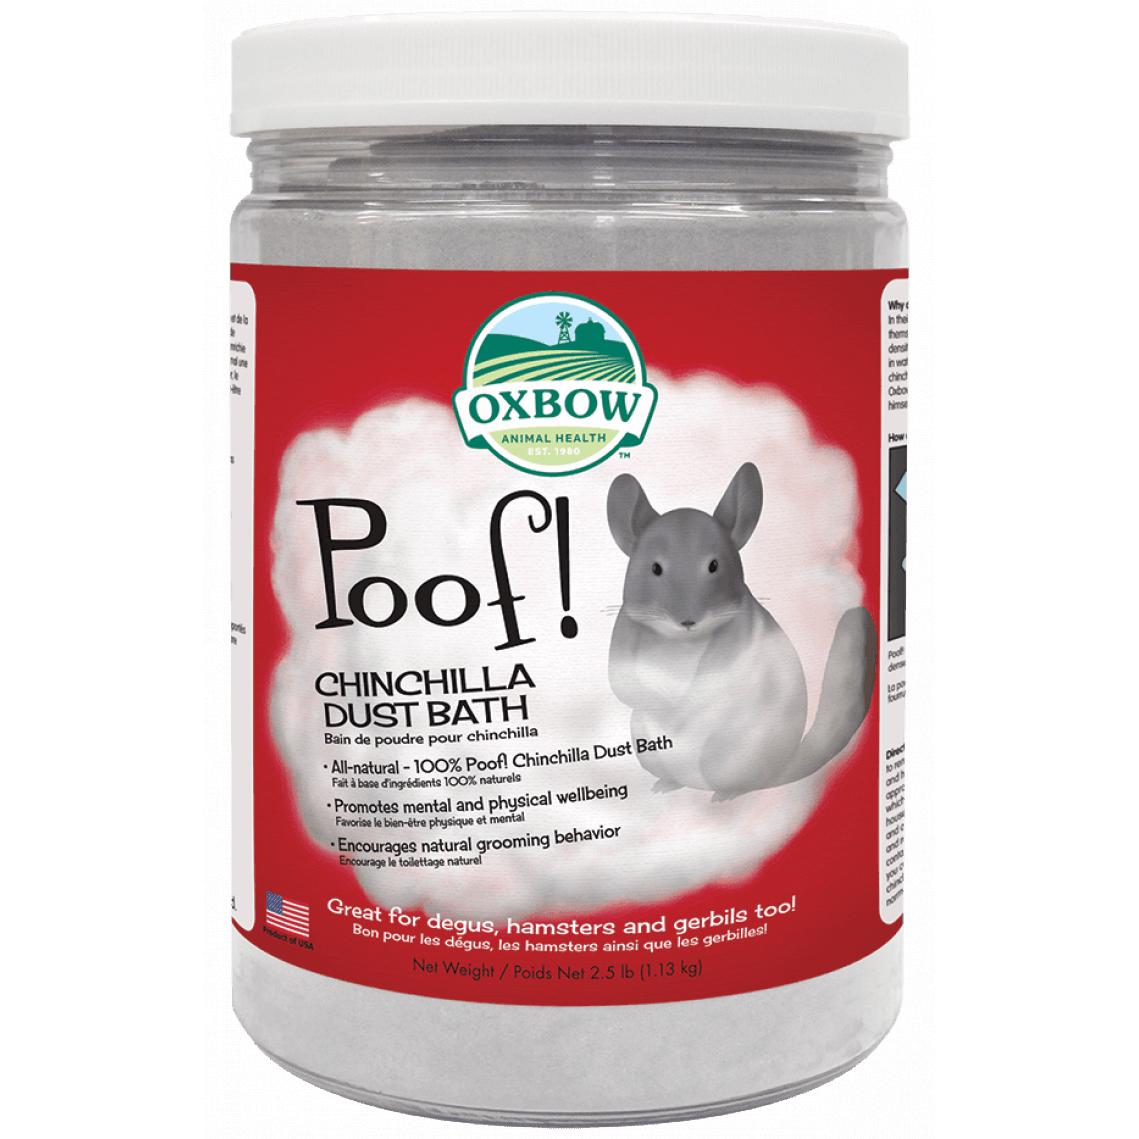 Oxbow Poof! Chinchilla Dust Bath (2.5lb)